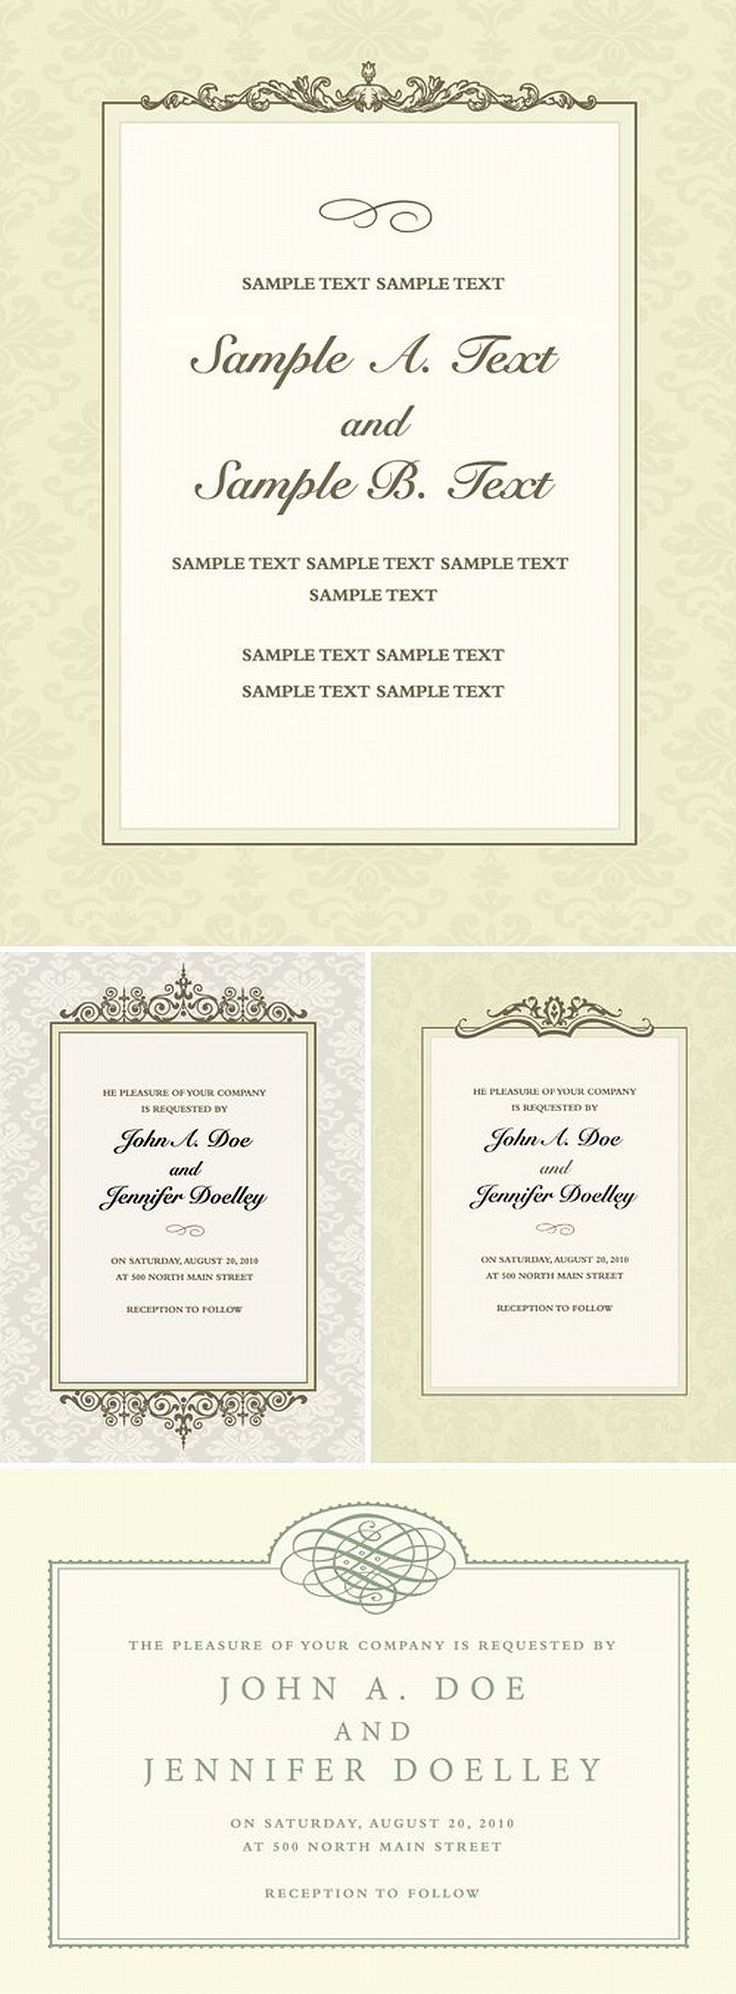 Ornate-Frames-Vector1-4.jpg (800×2168)